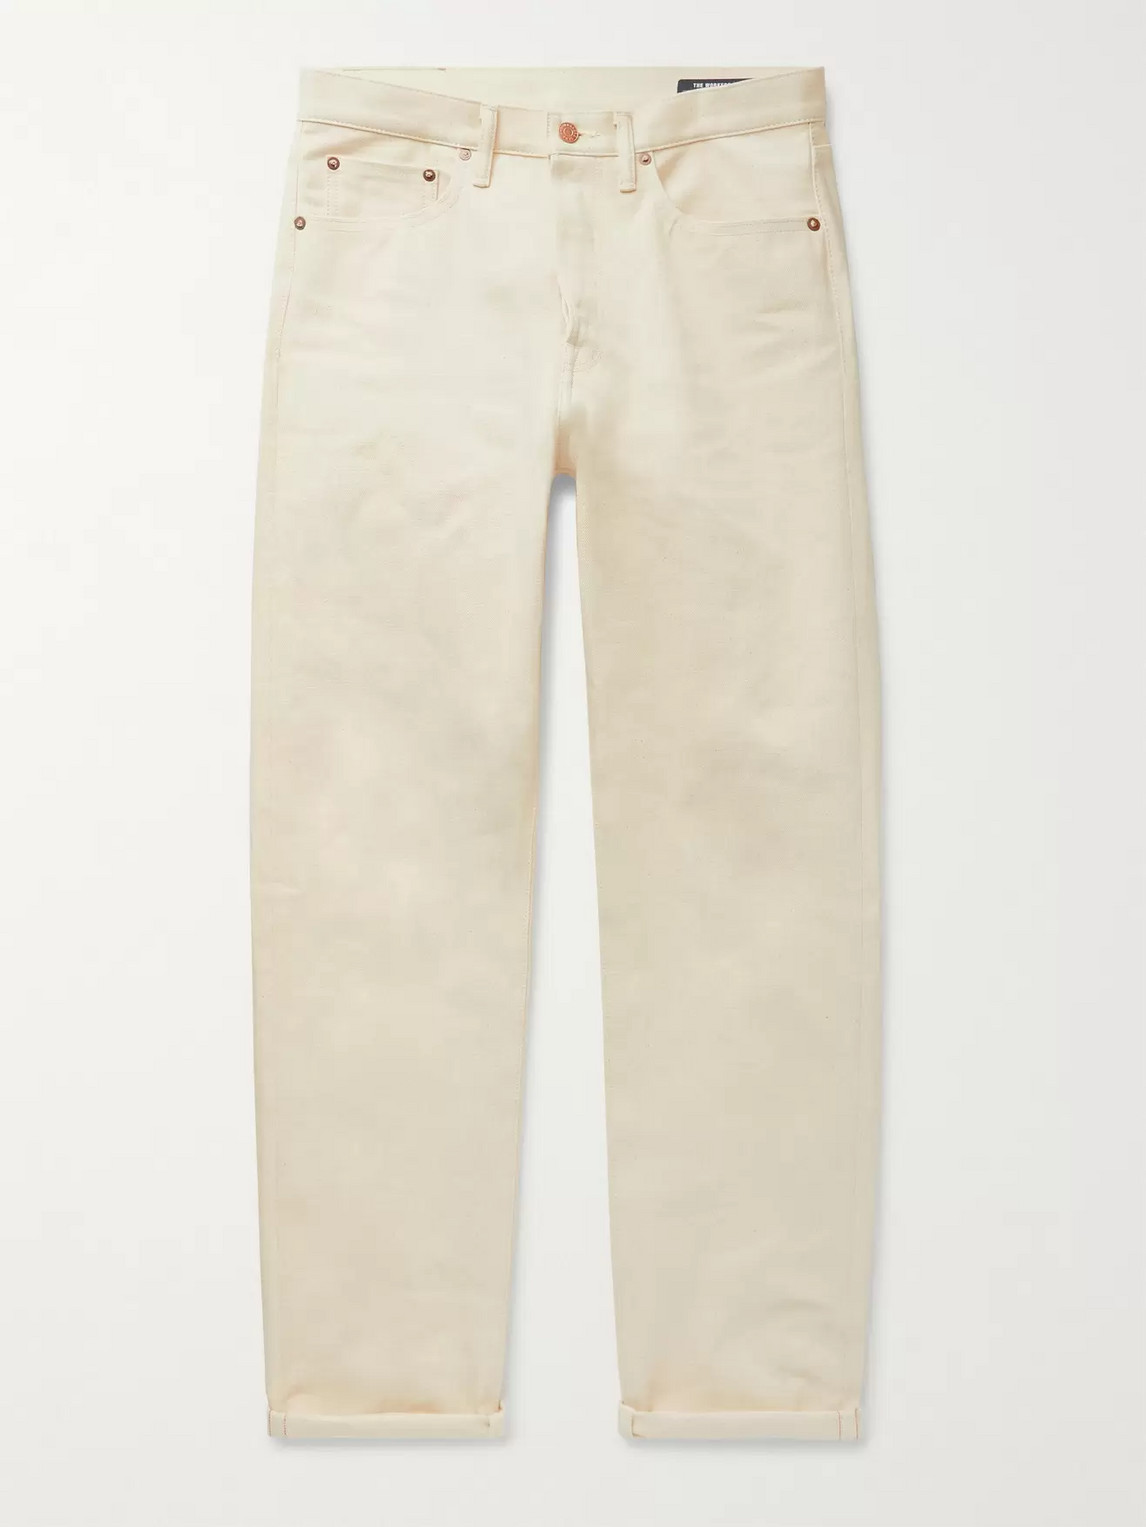 The Workers Club Selvedge Denim Jeans In Neutrals